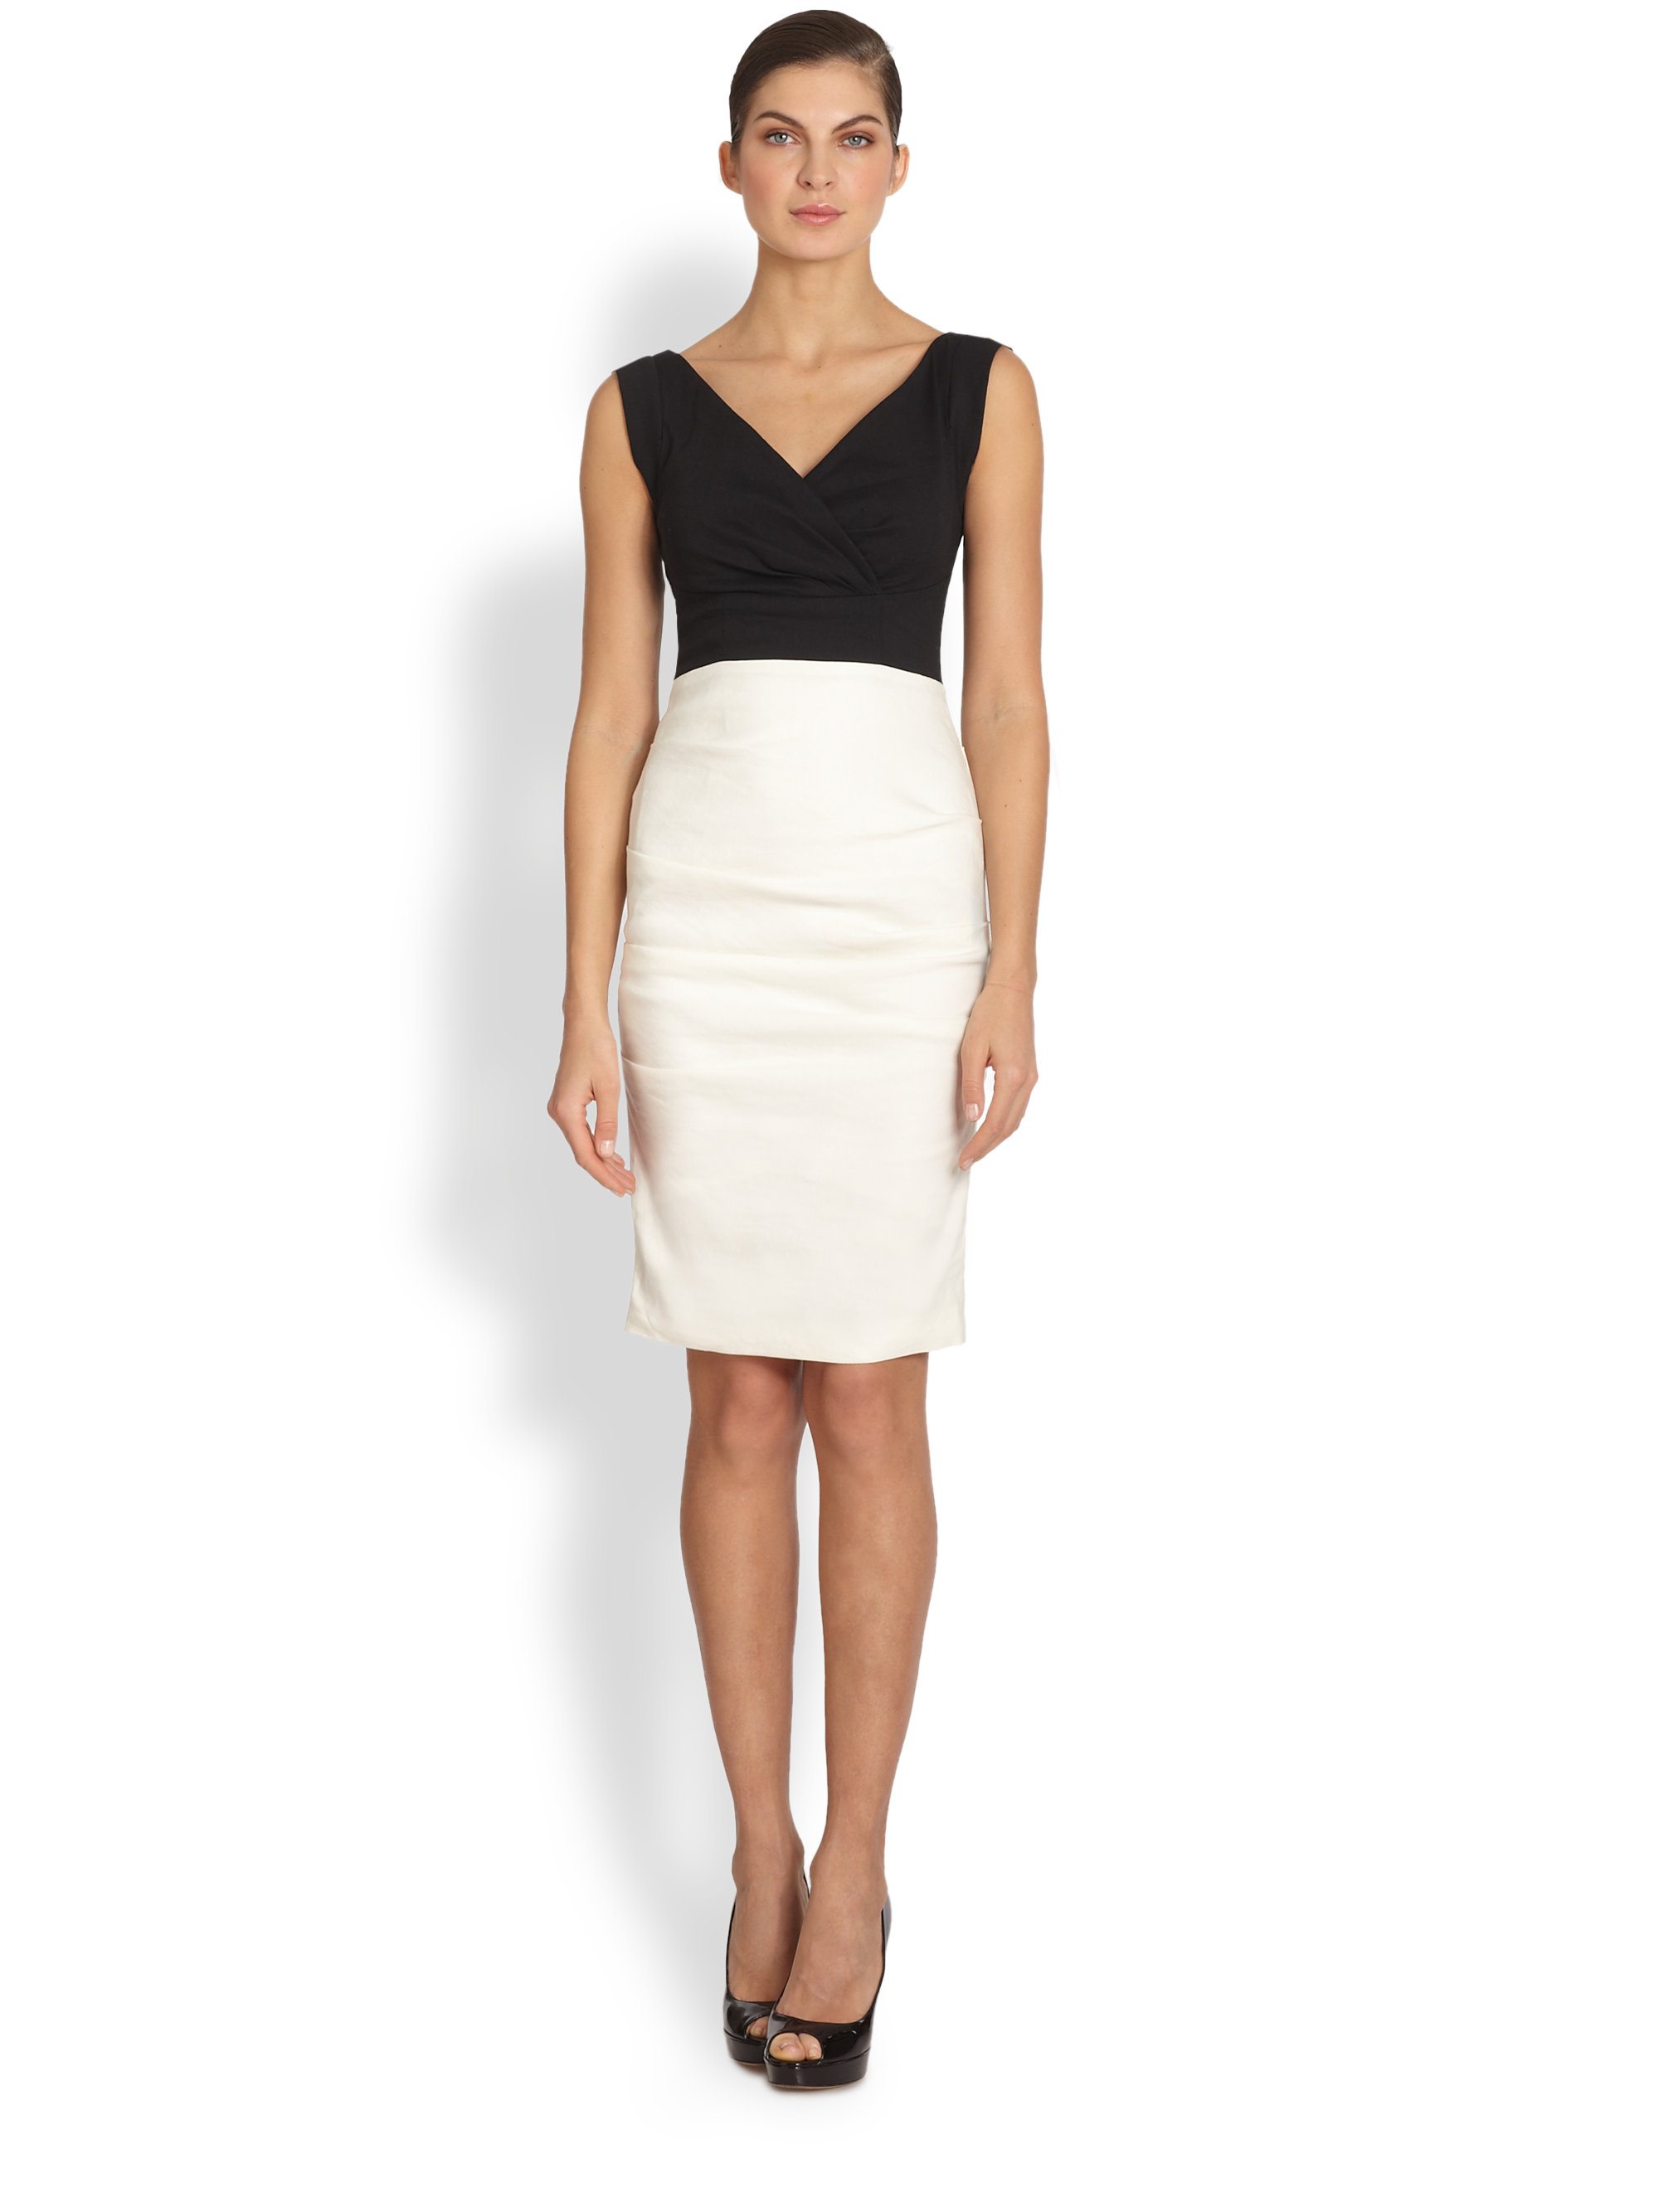 b3809d5805 Lyst - Nicole Miller Andrea Two-tone Cocktail Dress in Black